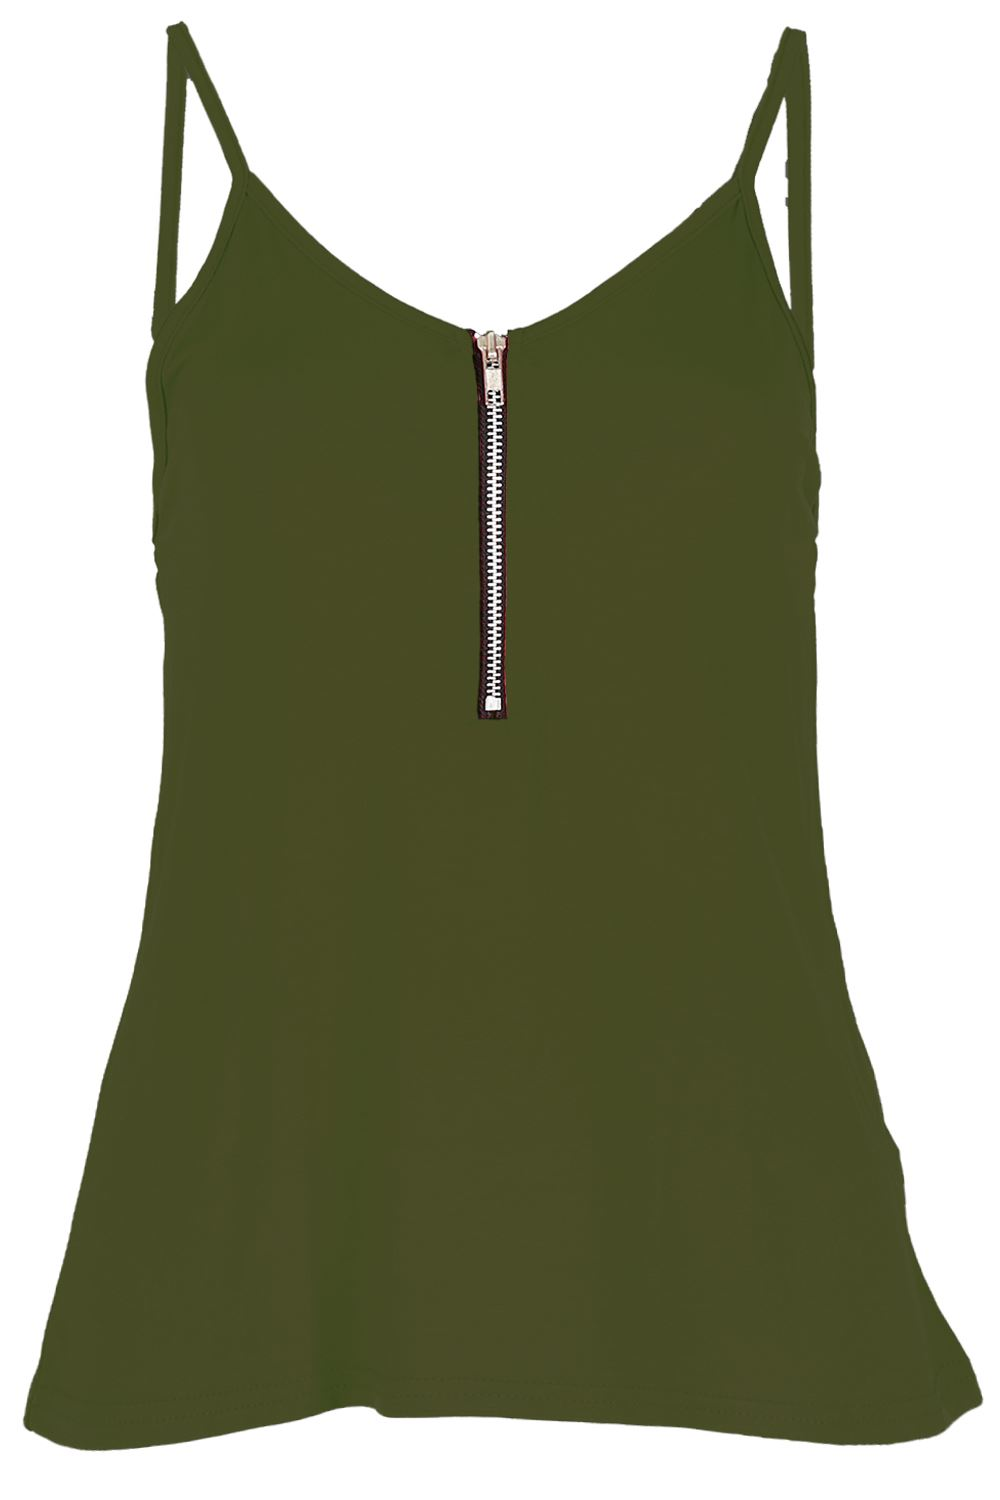 Womens-Ladies-Cami-Sleeveless-Swing-Vest-Strappy-Plain-Flared-Tank-Top-Plus-Size